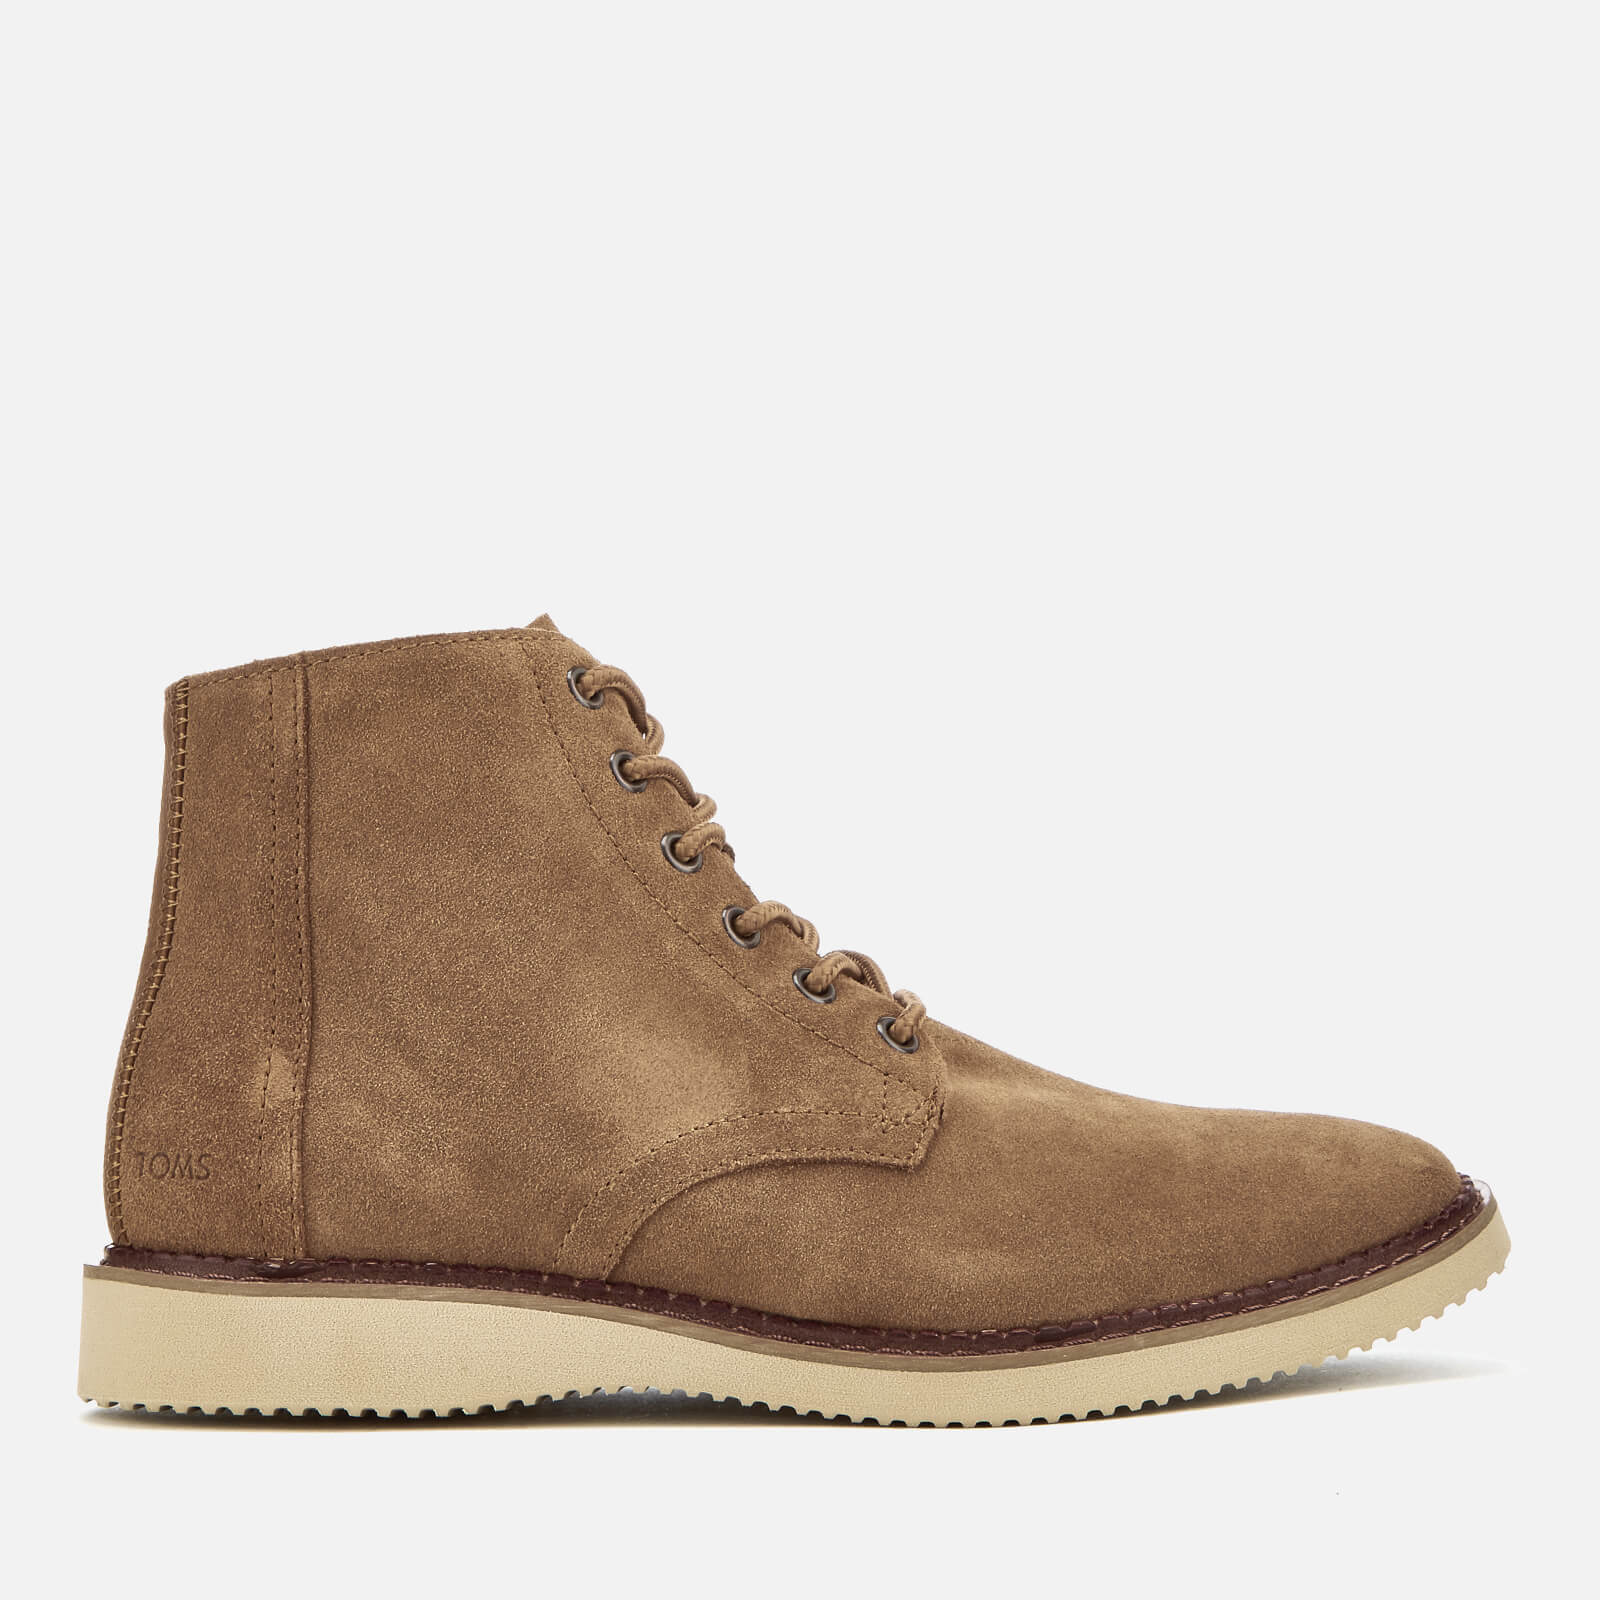 dbdad52644c TOMS Men's Porter Suede Lace Up Boots - Toffee